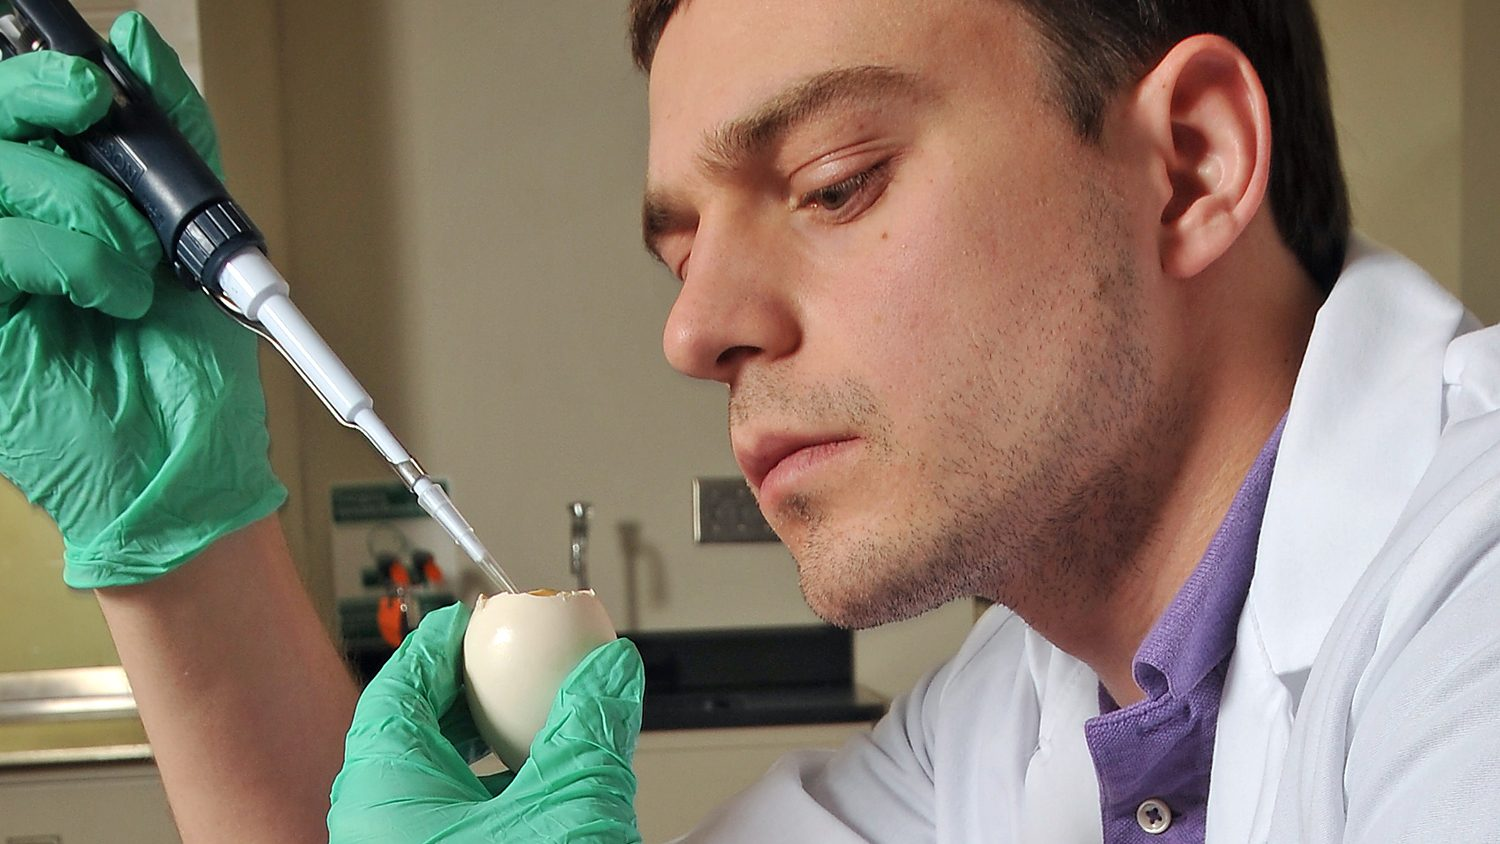 Poultry researcher examines an egg yolk at NC State's Prestage Dept of Poultry Sciences's labs.